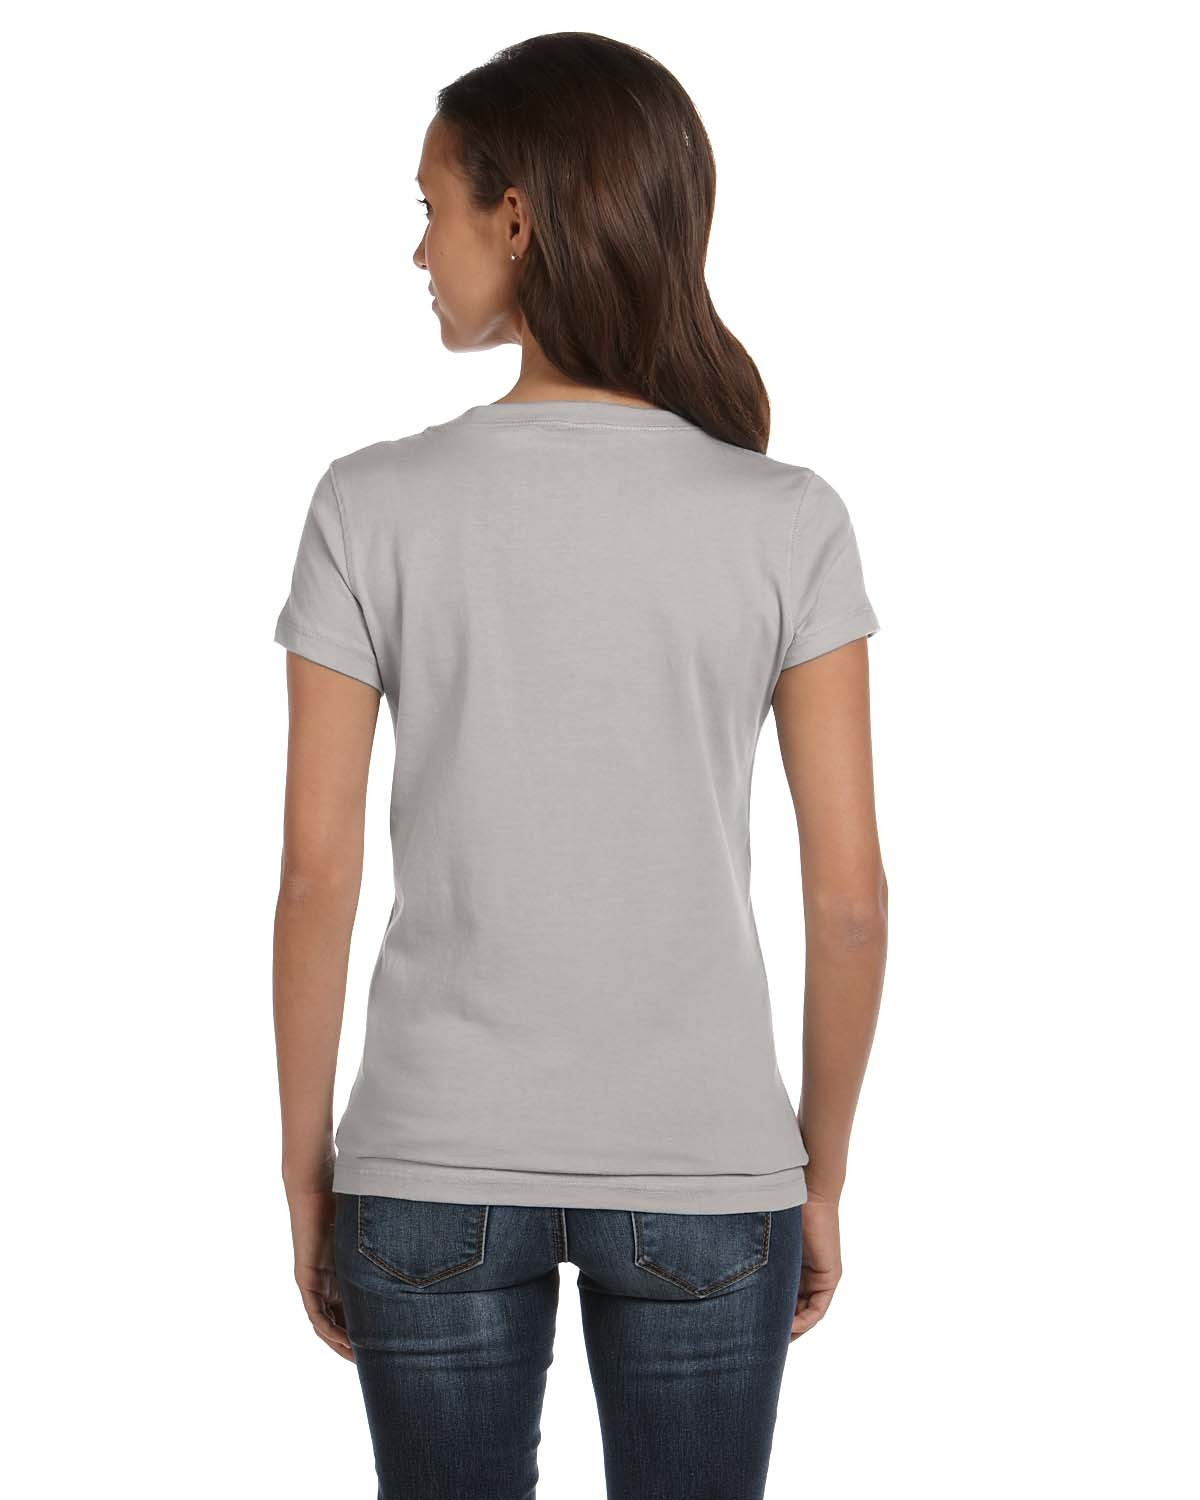 B6005 Bella + Canvas ATHLETIC HEATHER